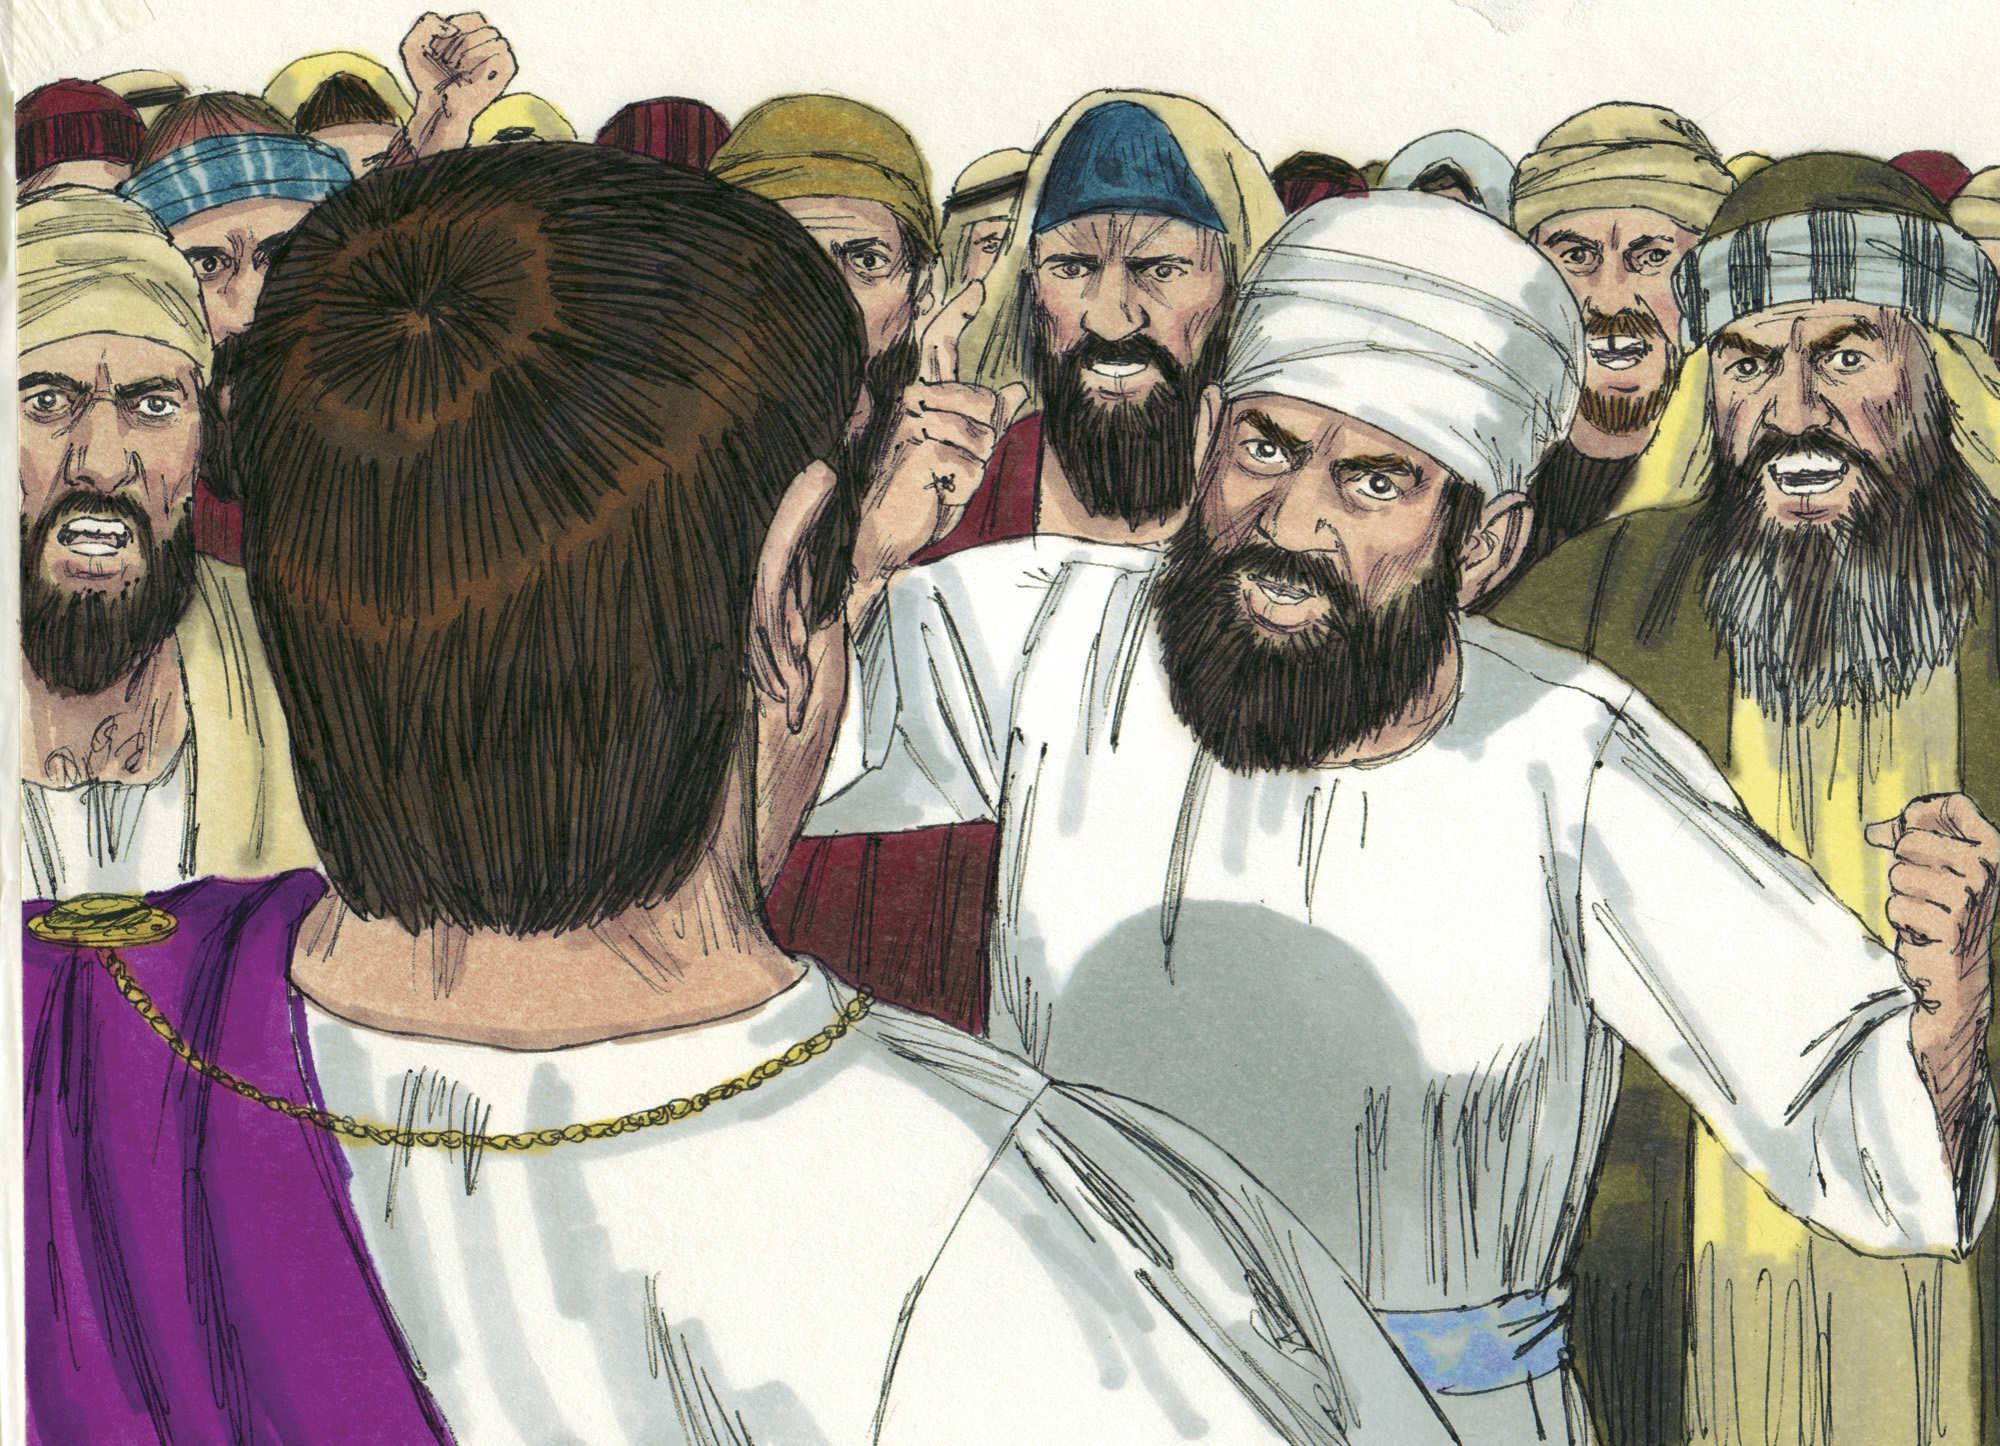 What happened to barabbas after his release